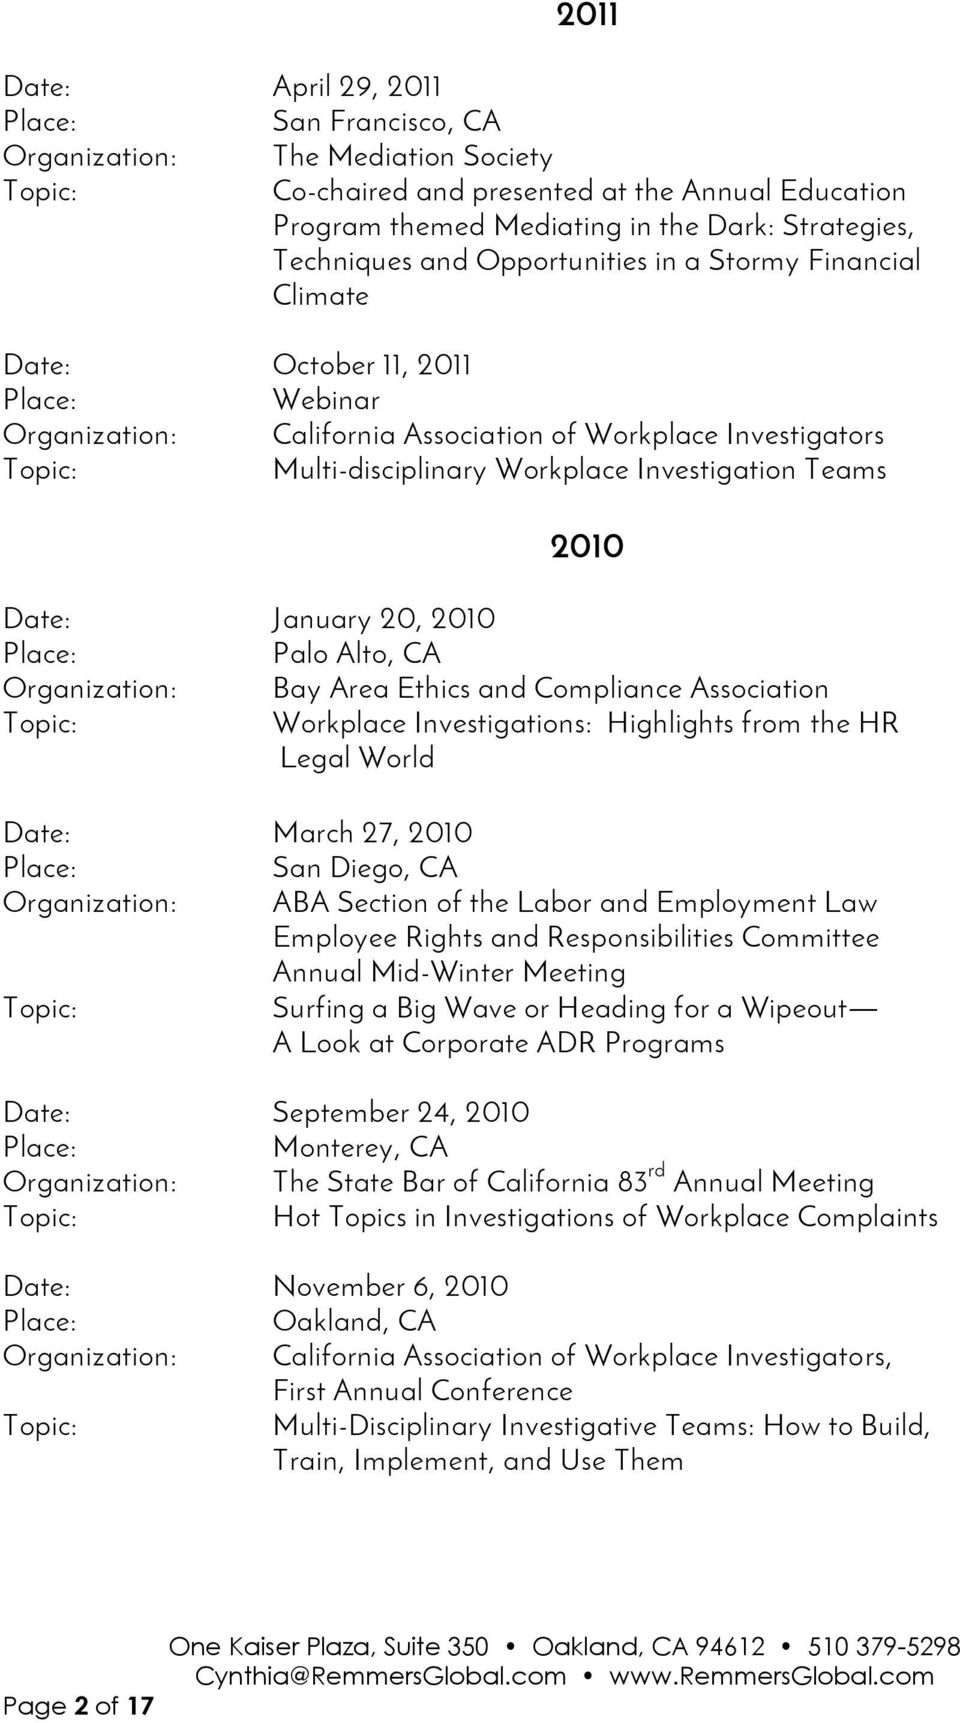 Palo Alto, CA Organization: Bay Area Ethics and Compliance Association Workplace Investigations: Highlights from the HR Legal World Date: March 27, 2010 San Diego, CA Organization: ABA Section of the